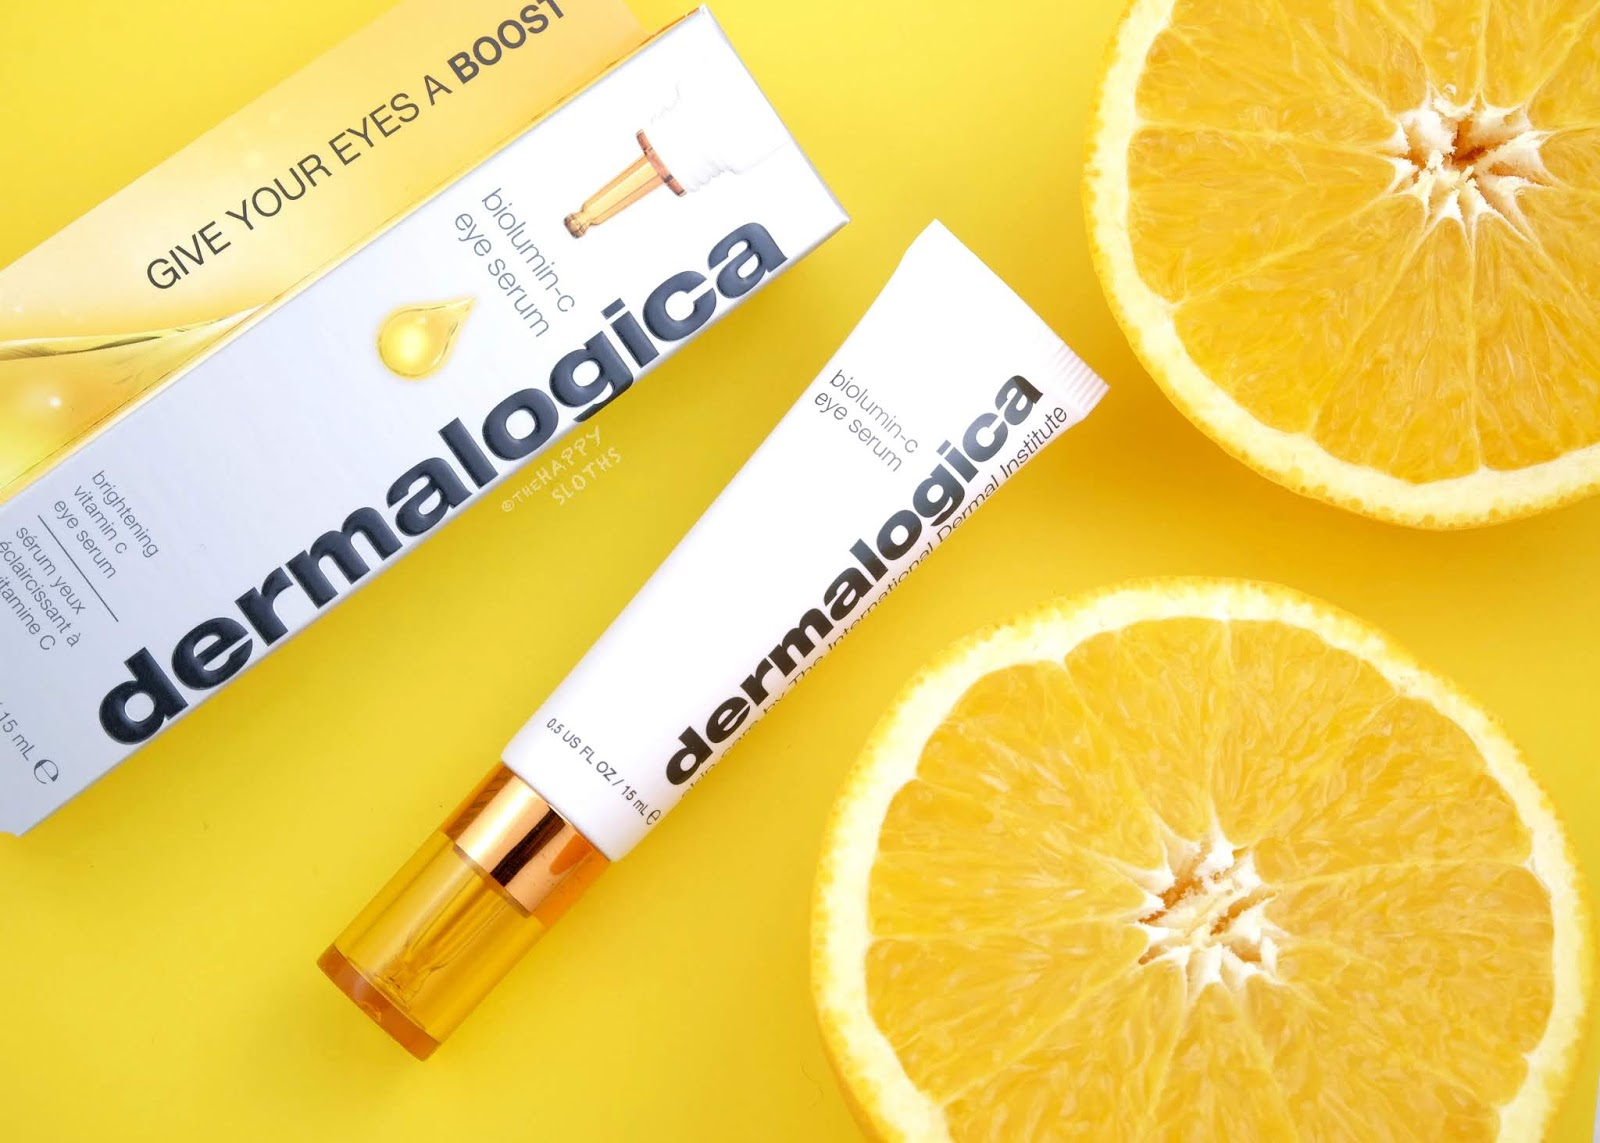 Dermalogica | Biolumin-C Eye Serum: Review